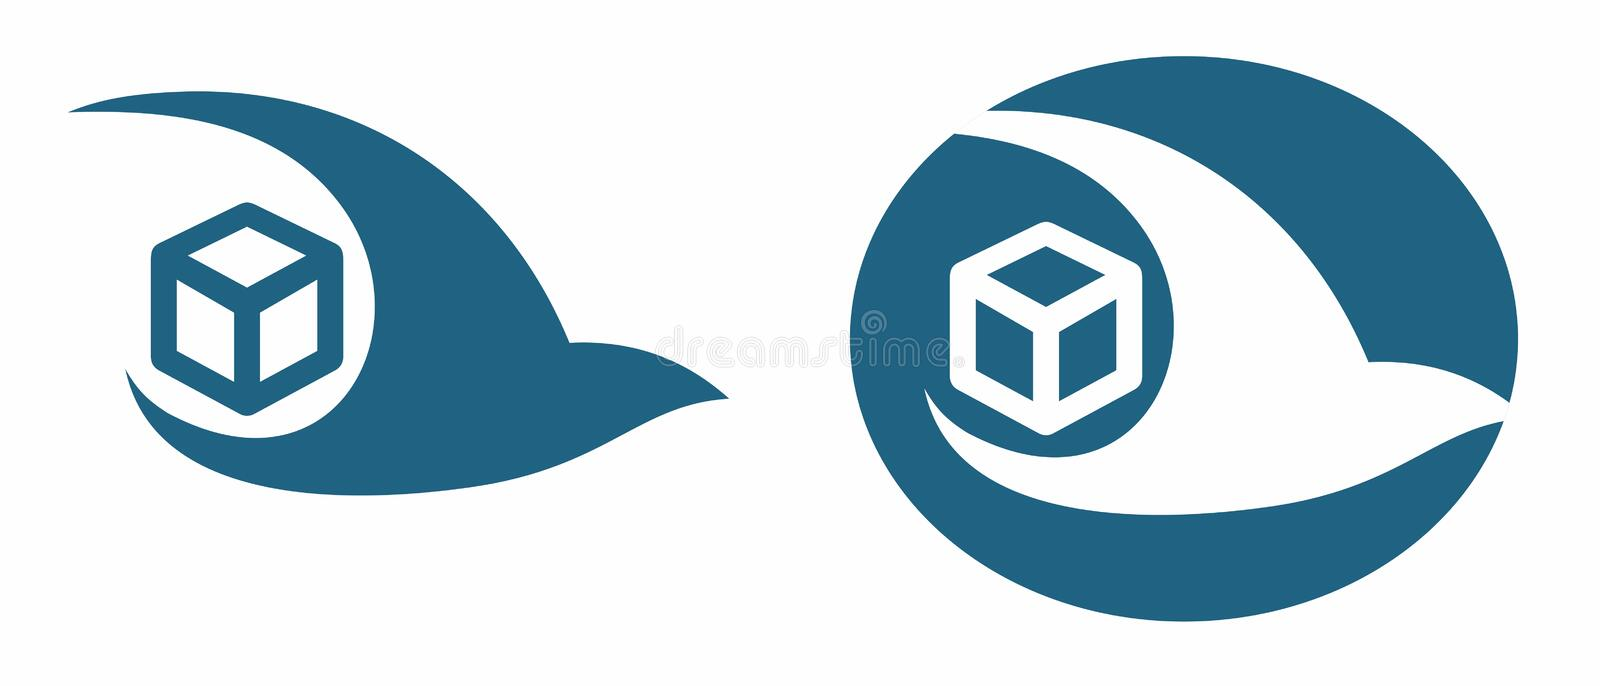 Swift package delivery courier service or express transport company logo brand in blue and white stock illustration